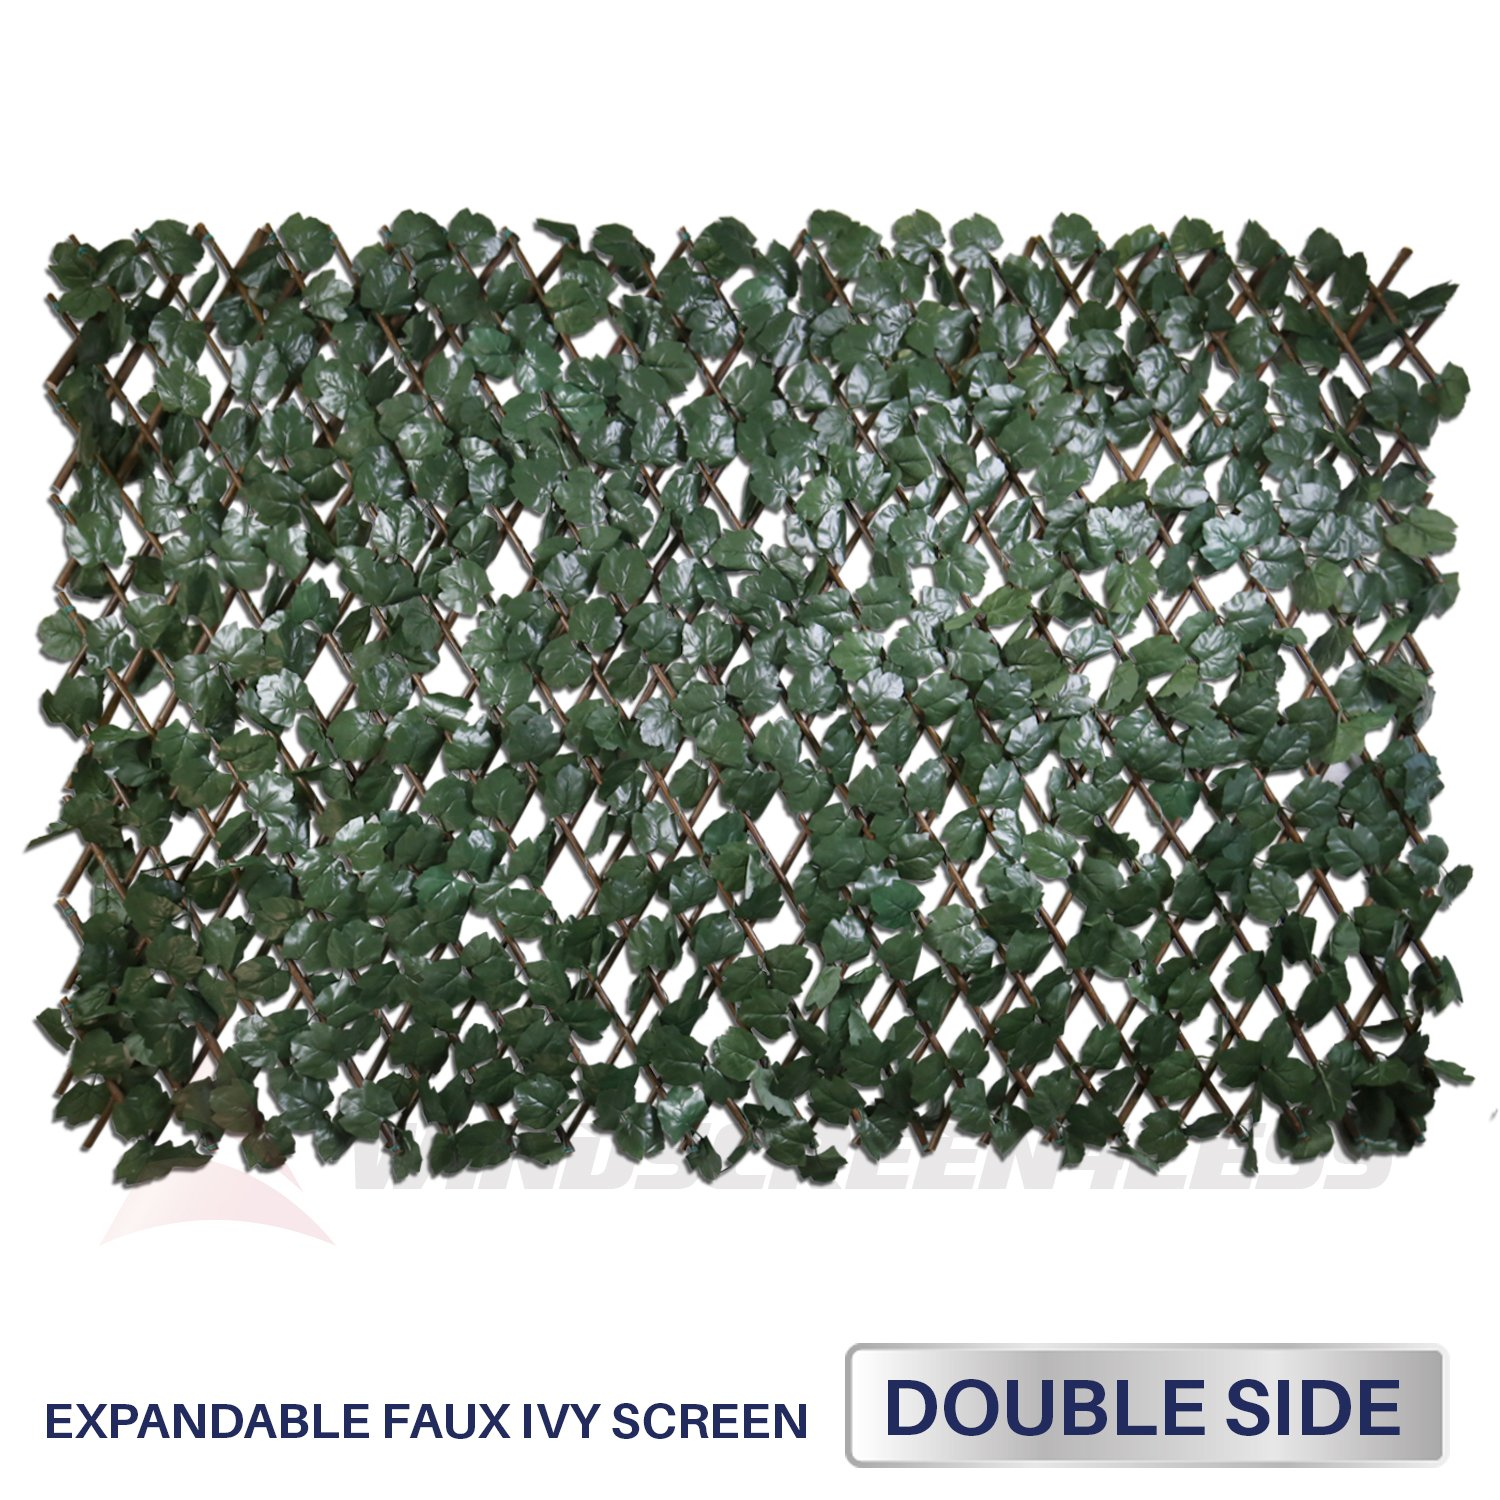 Windscreen4less IFDDSL Artificial Leaf Faux Ivy Expandable/Stretchable Privacy Fence Screen (Double Sided Leaves) Double Sides Leaves